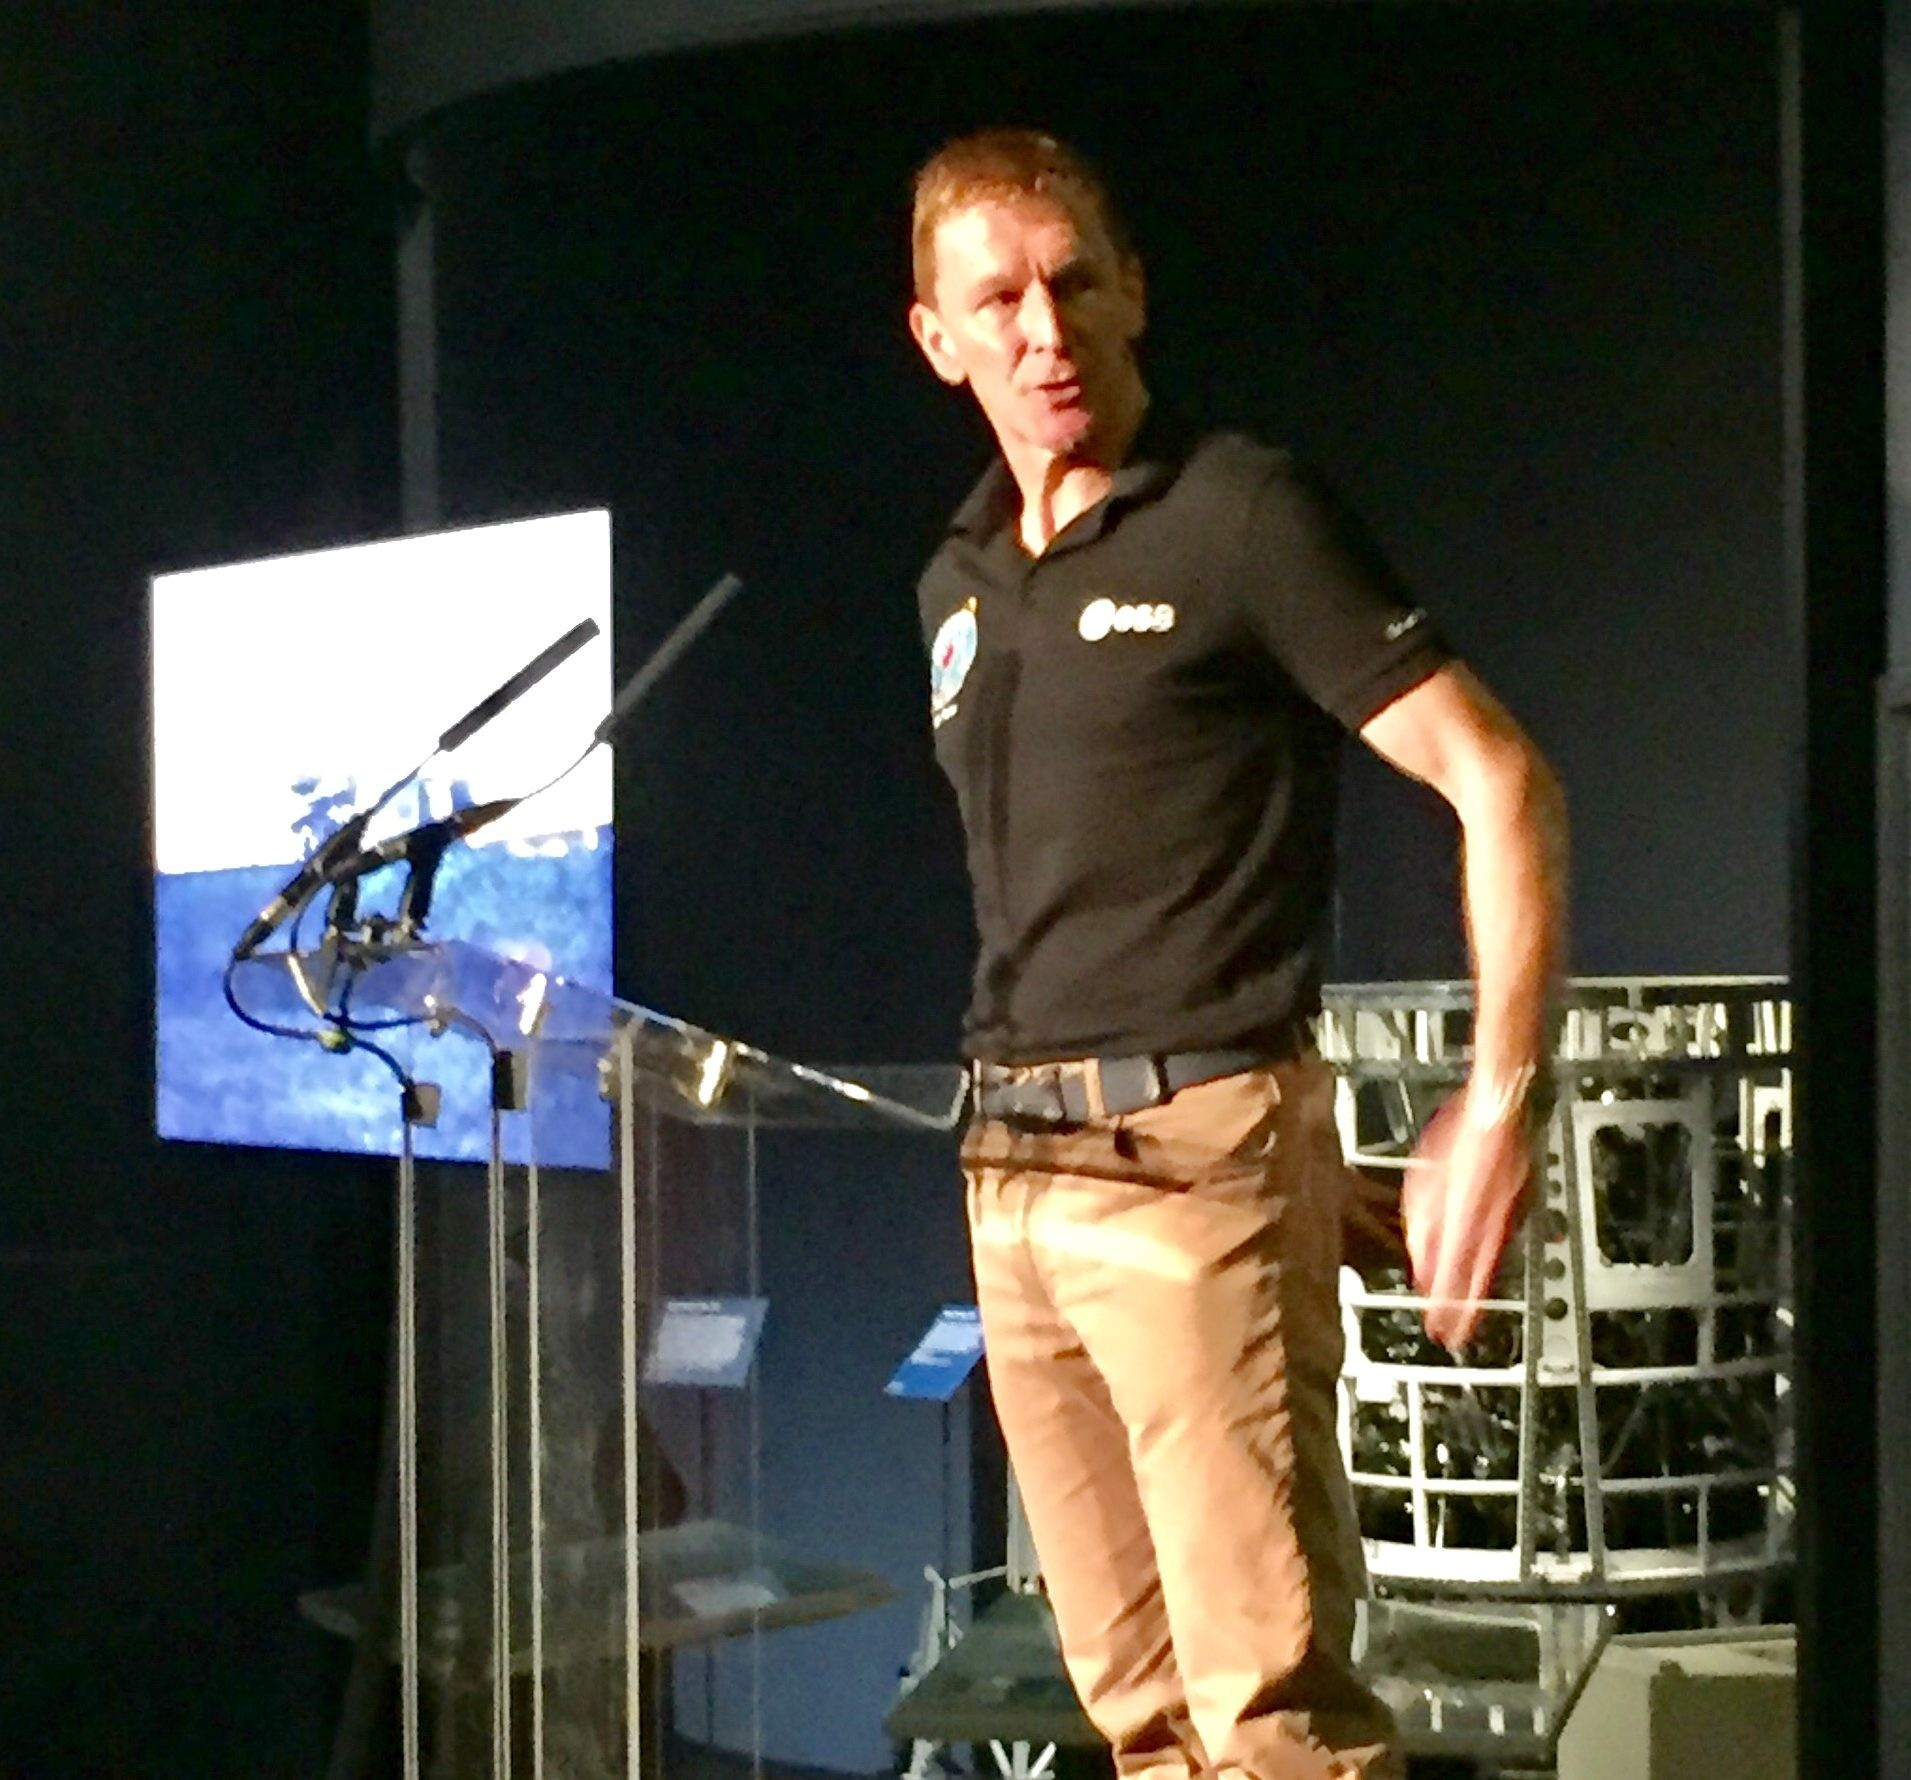 Tim Peake at the Science Museum London